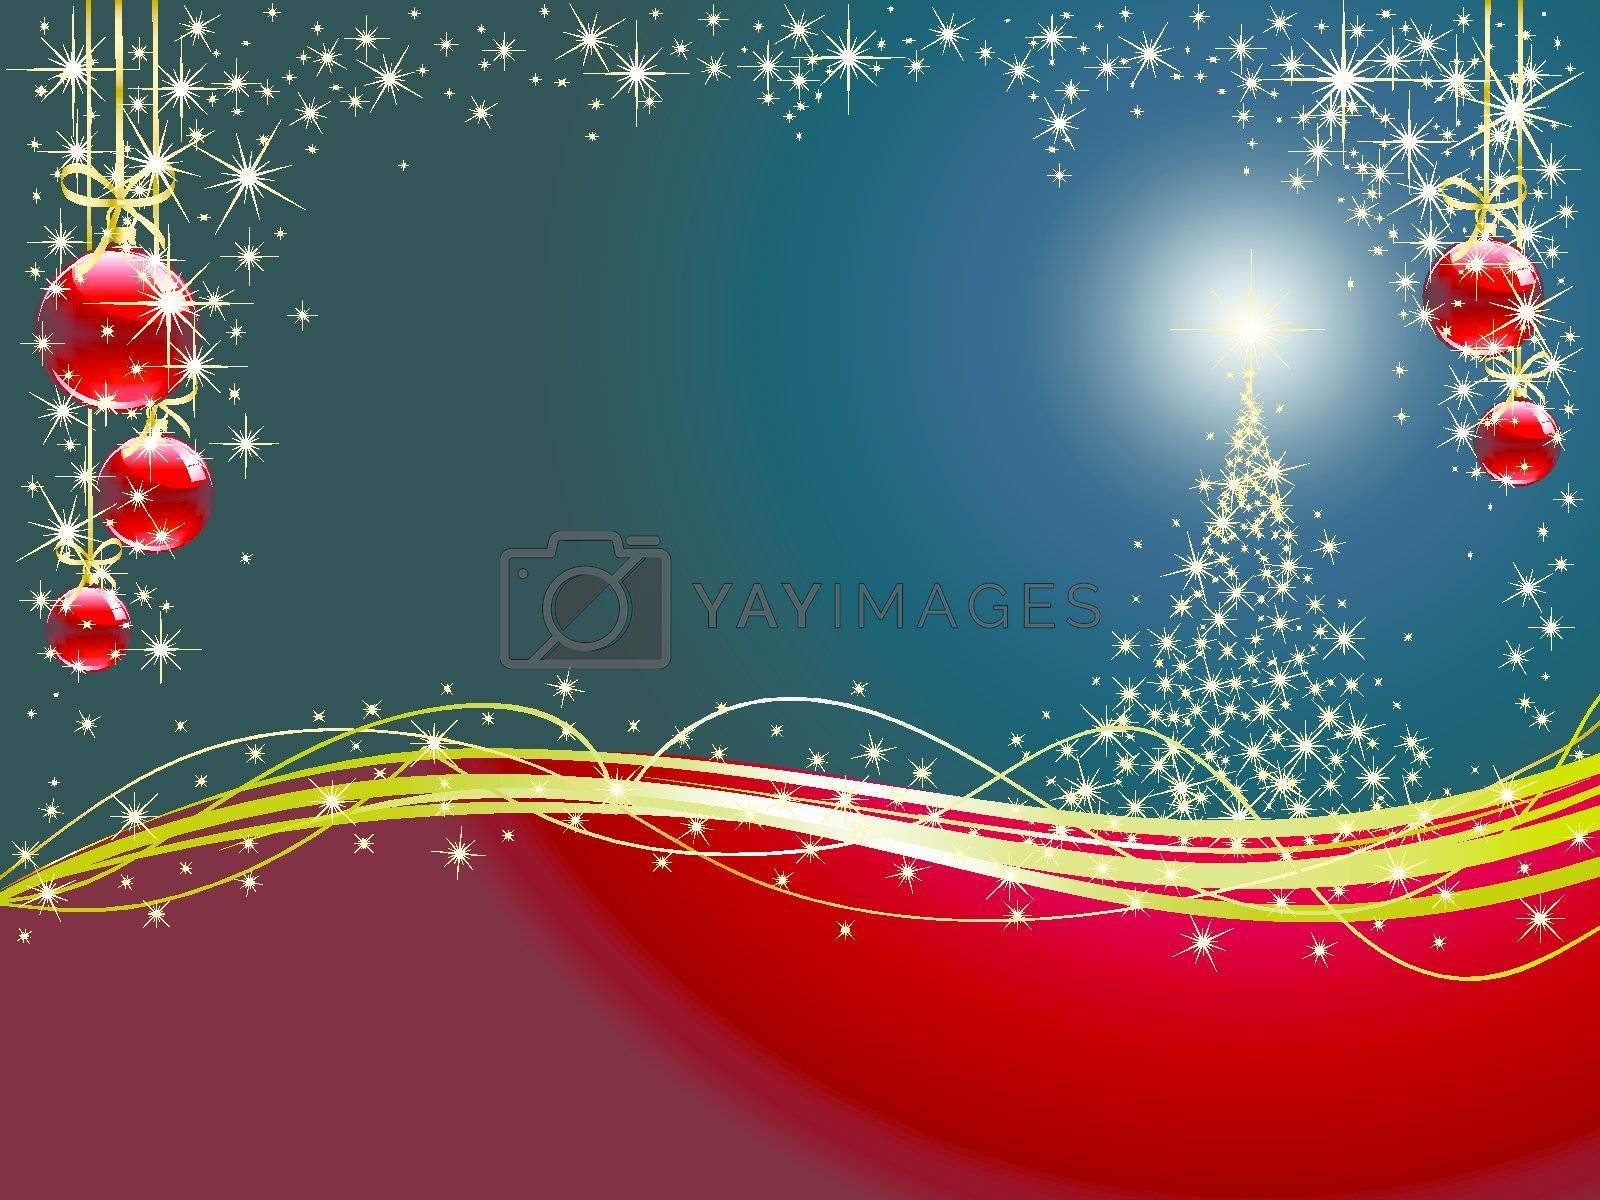 Christmas tree and Christmas ball hanging on golden ribbon on snowy winter background